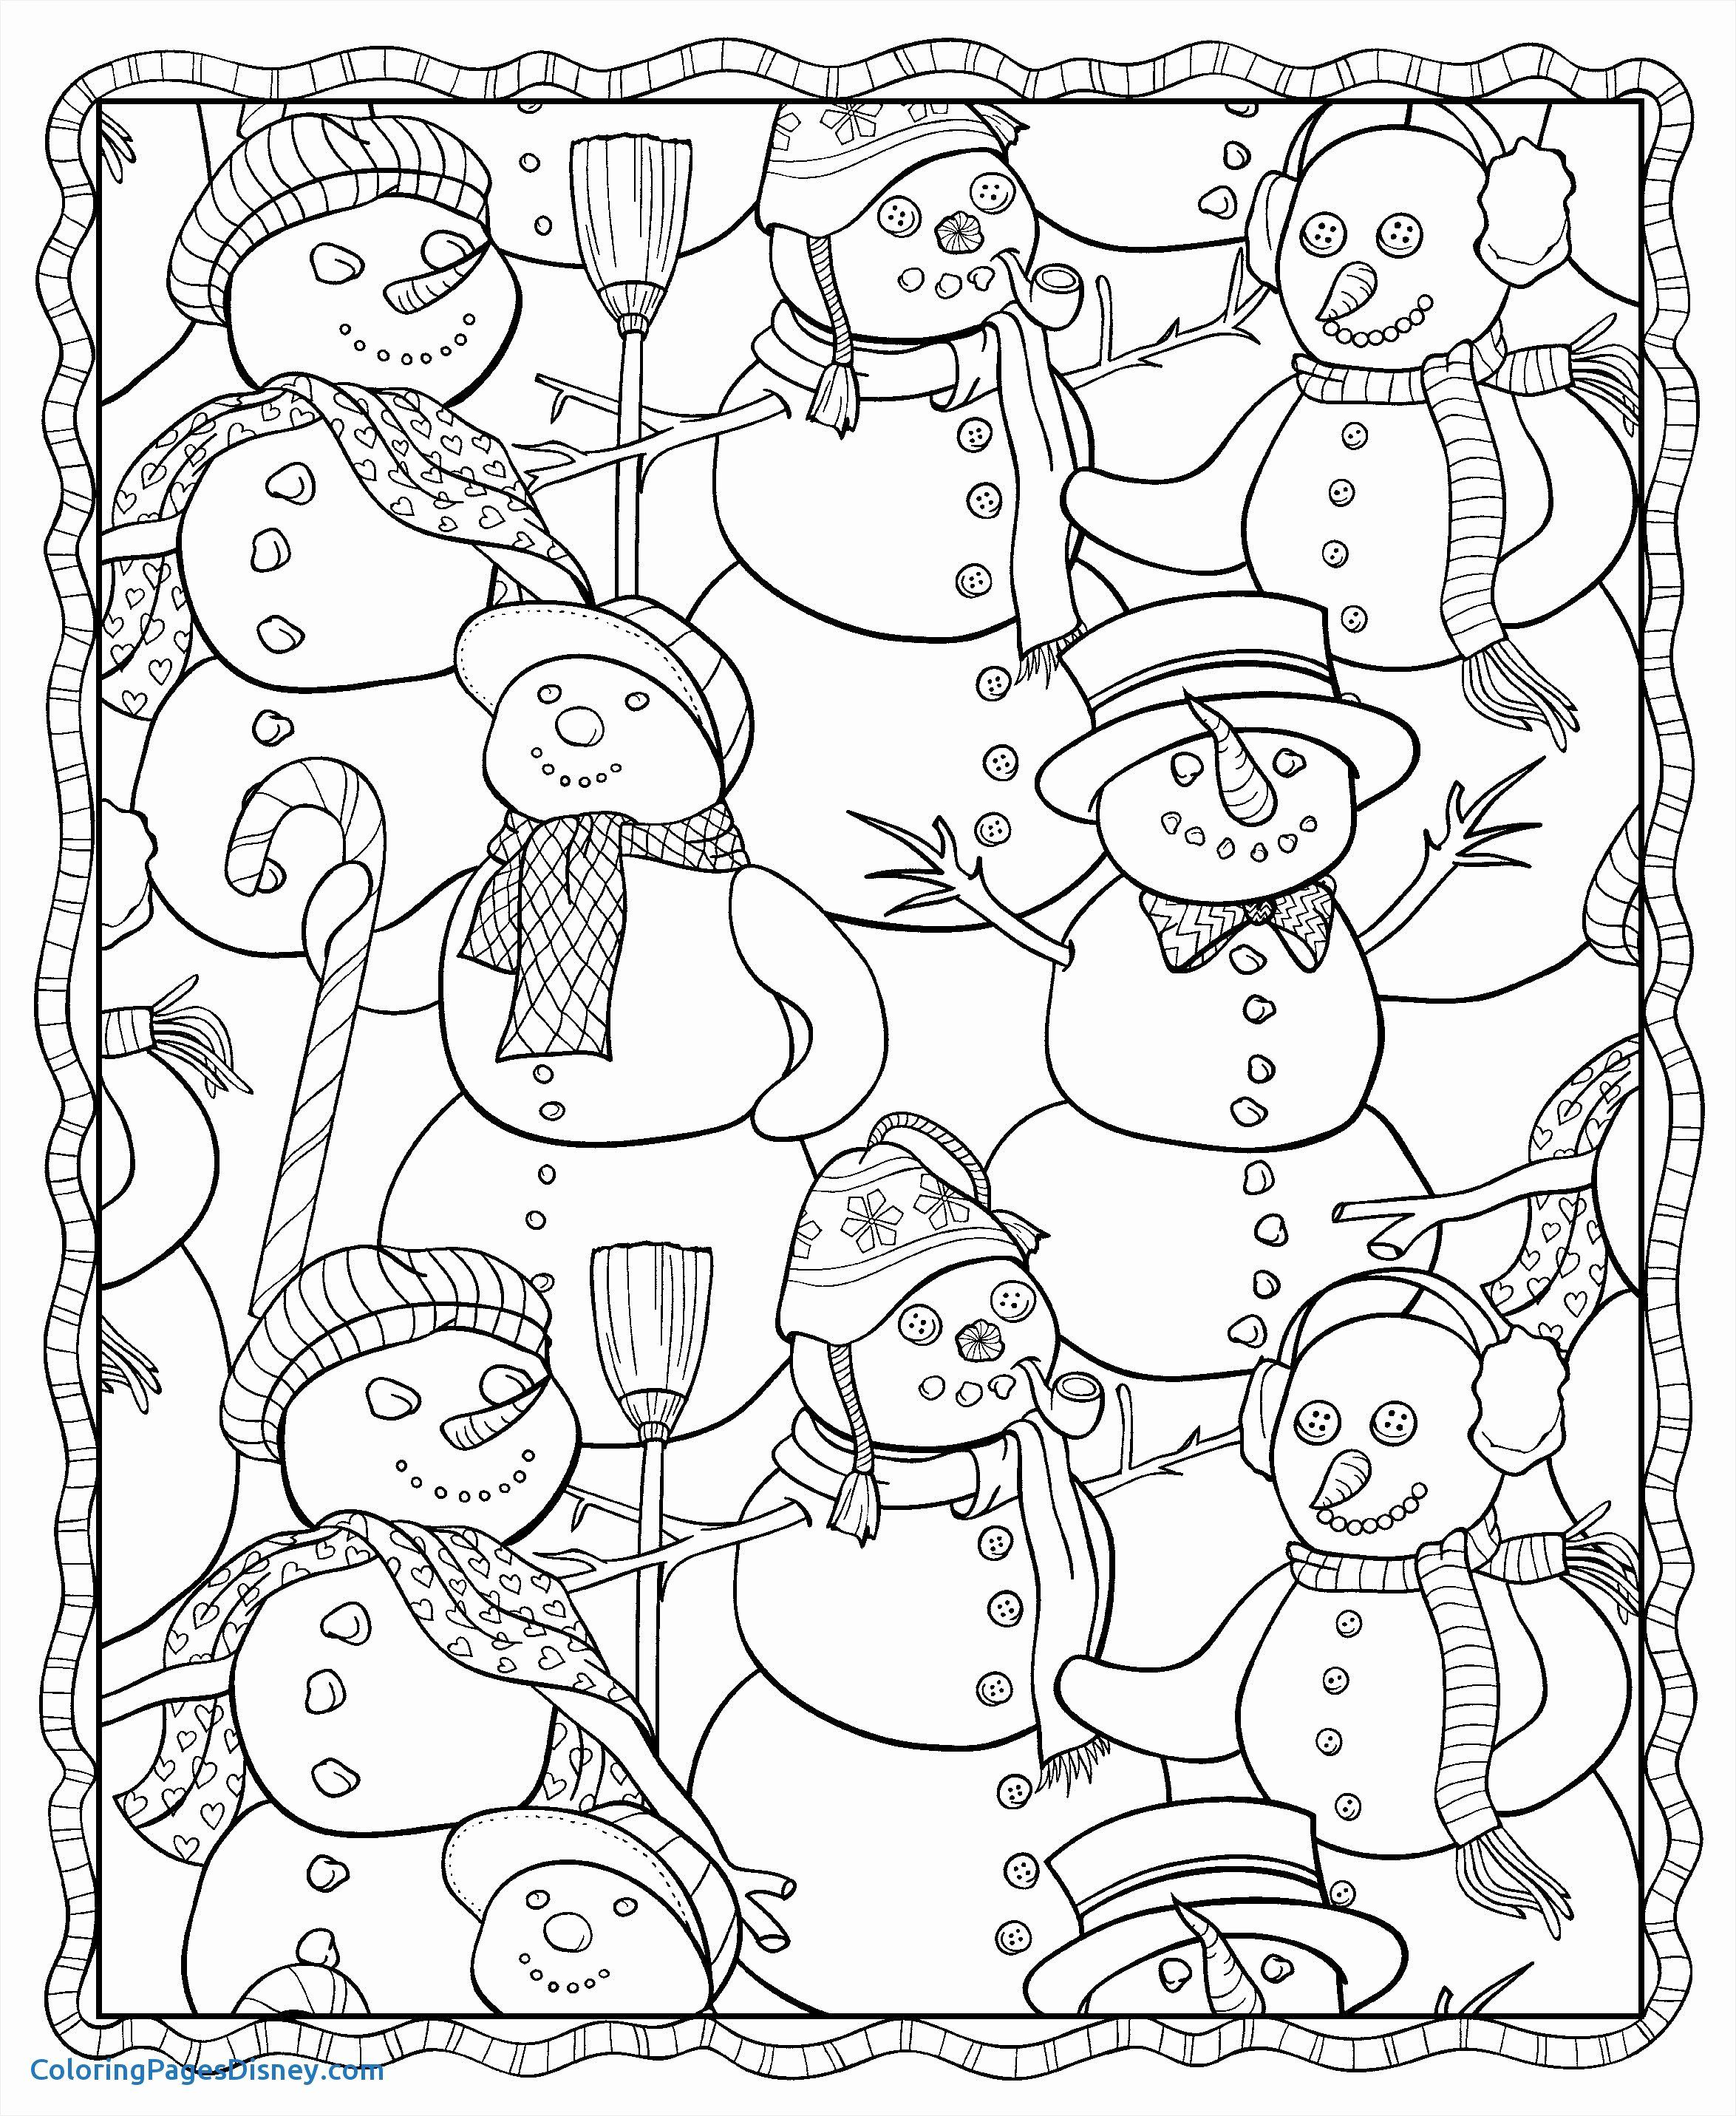 January Coloring Pages Free Printable New 28 Print Out Coloring Pages Gallery Coloring She Summer Coloring Pages Spring Coloring Pages Toy Story Coloring Pages